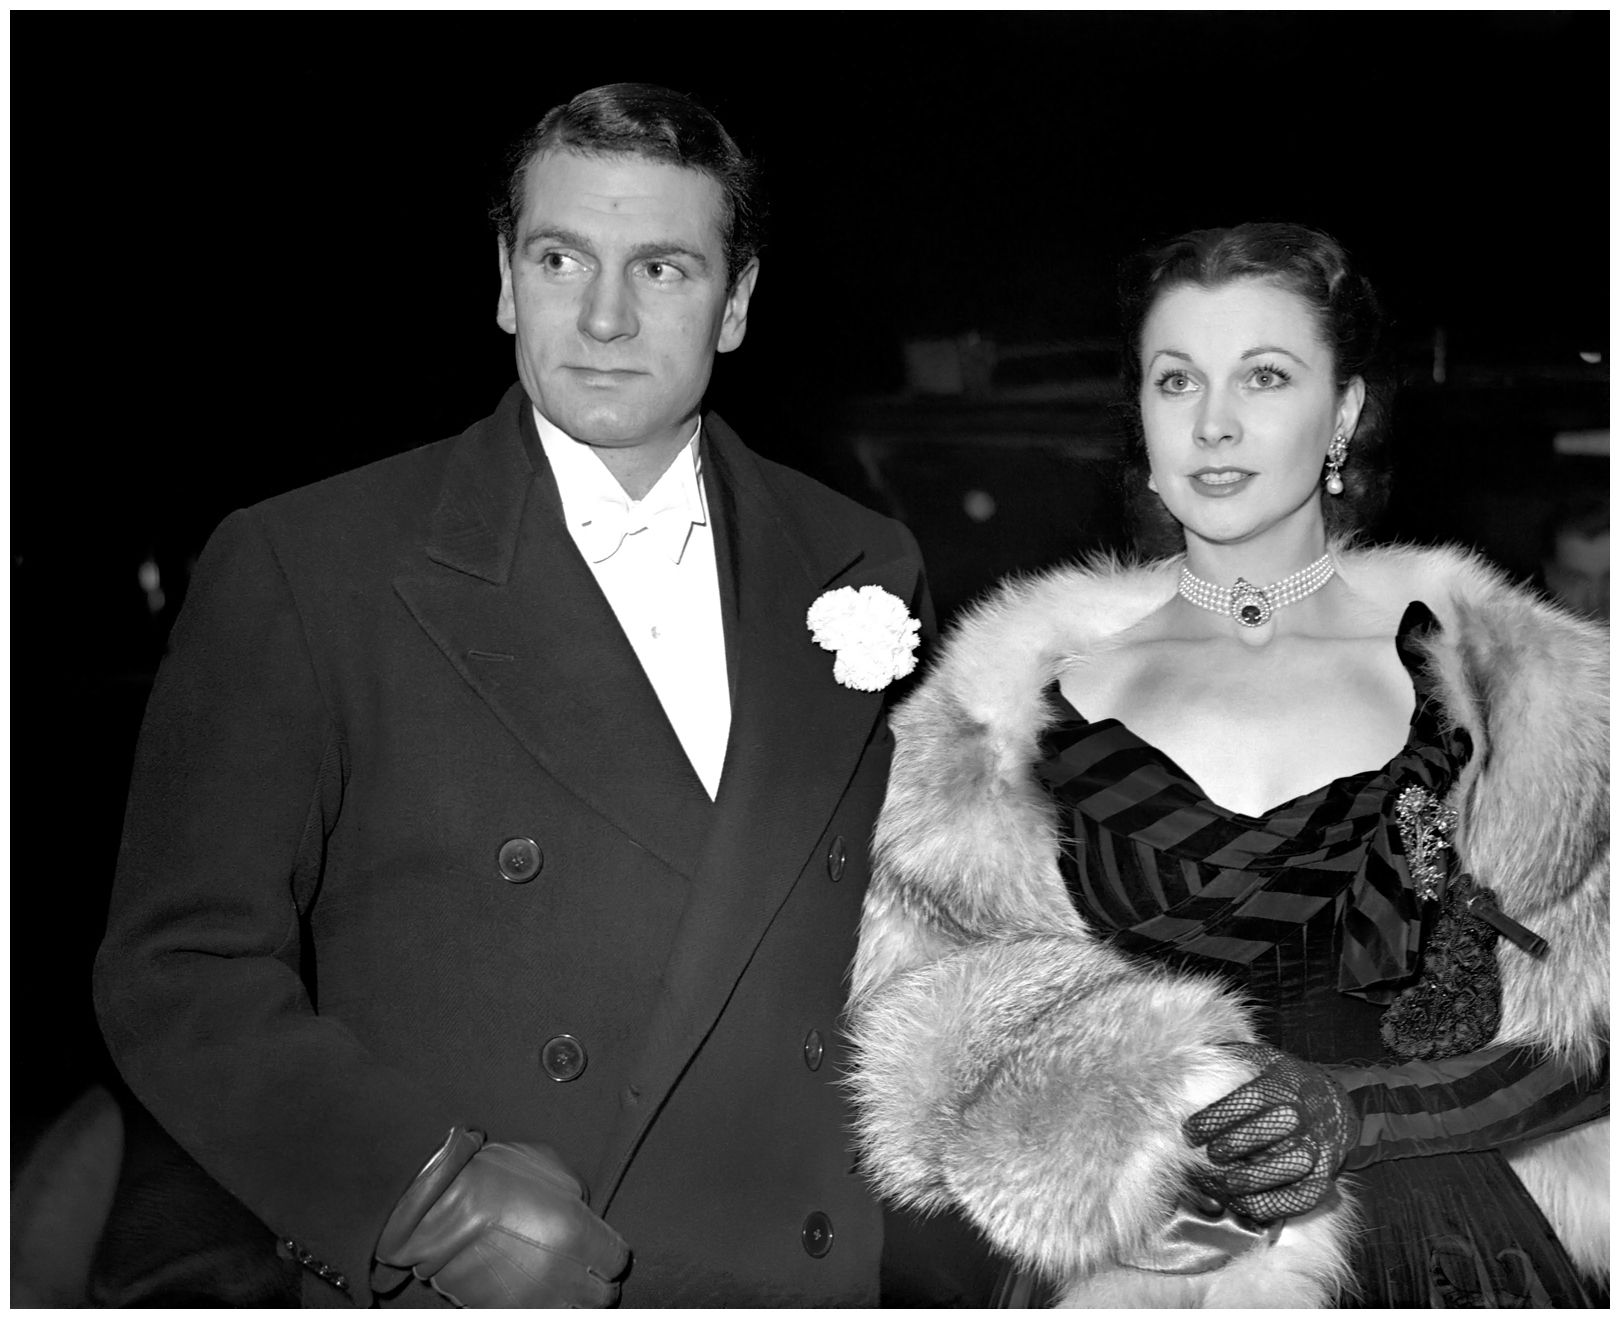 Laurence olivier spartacus quotes - Sir Laurence Olivier And Wife Lady Olivier Vivien Leigh